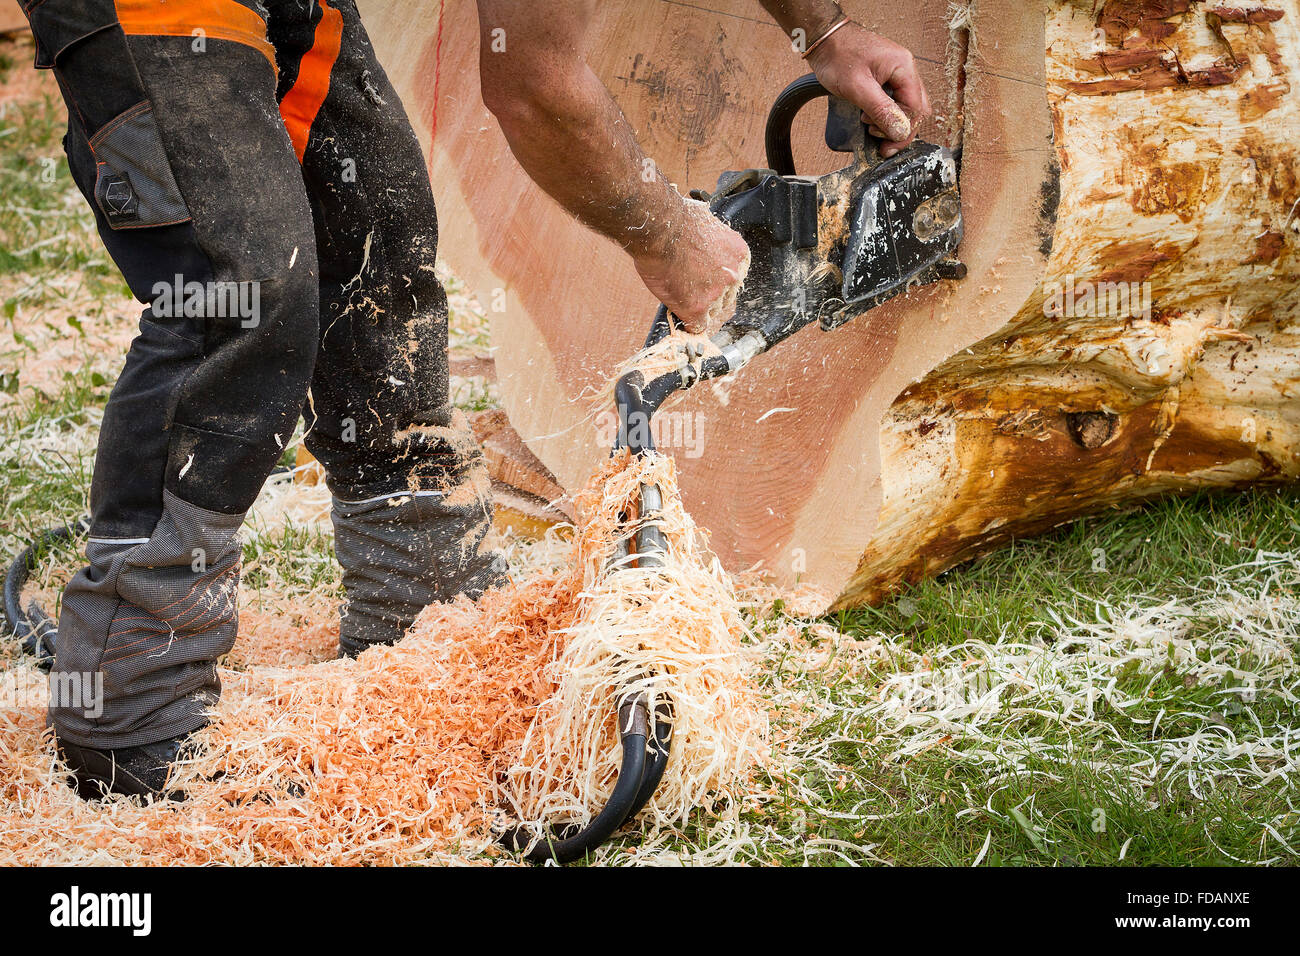 Log sawing stock photos images alamy